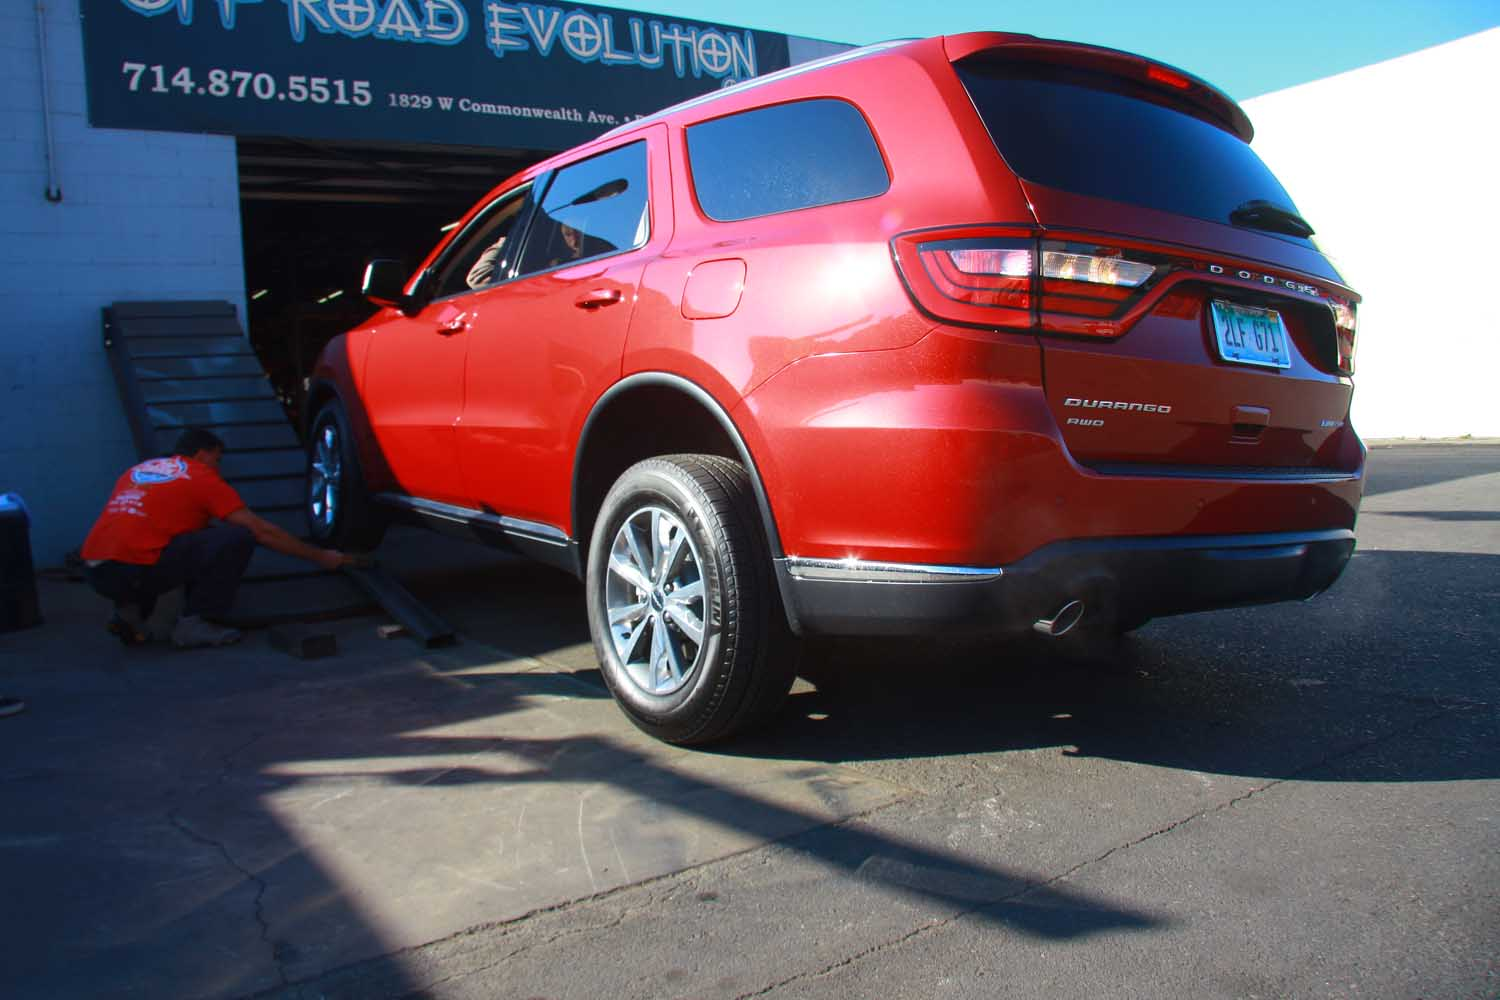 2014 Dodge Durango On 30 Degree RTI Ramp at Off Road Evolution